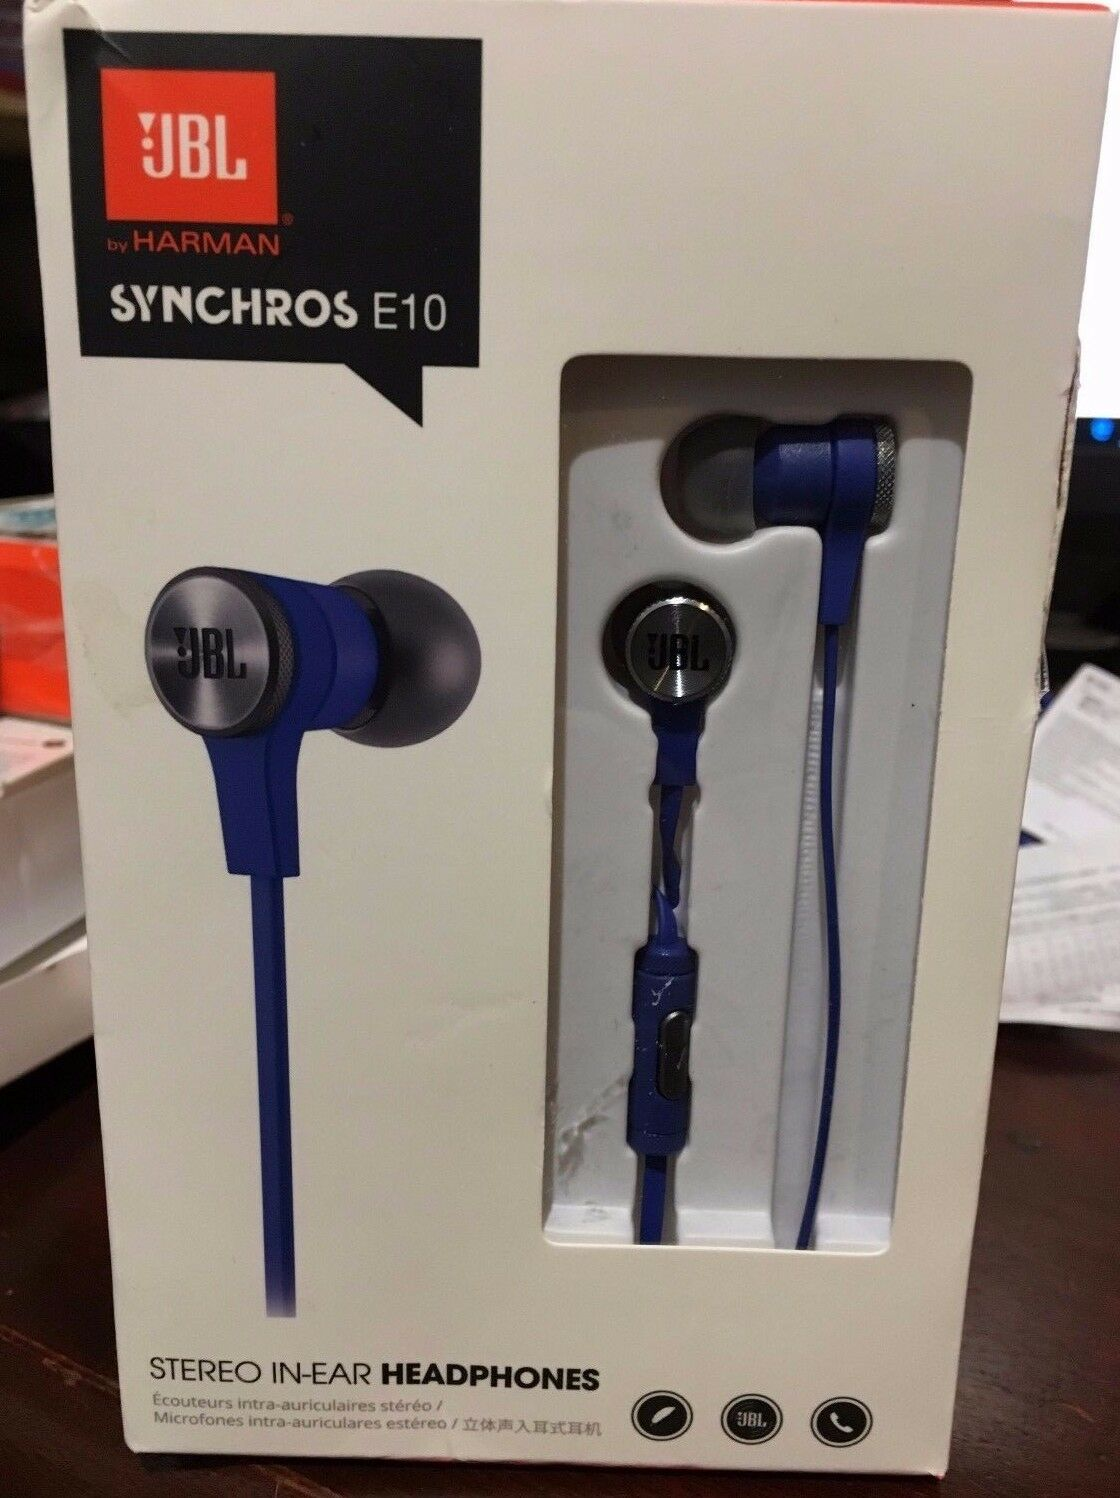 Jbl Synchros E10 In Ear Headphones Blue 1400 Picclick Headset E30 1 Of 1only 4 Available